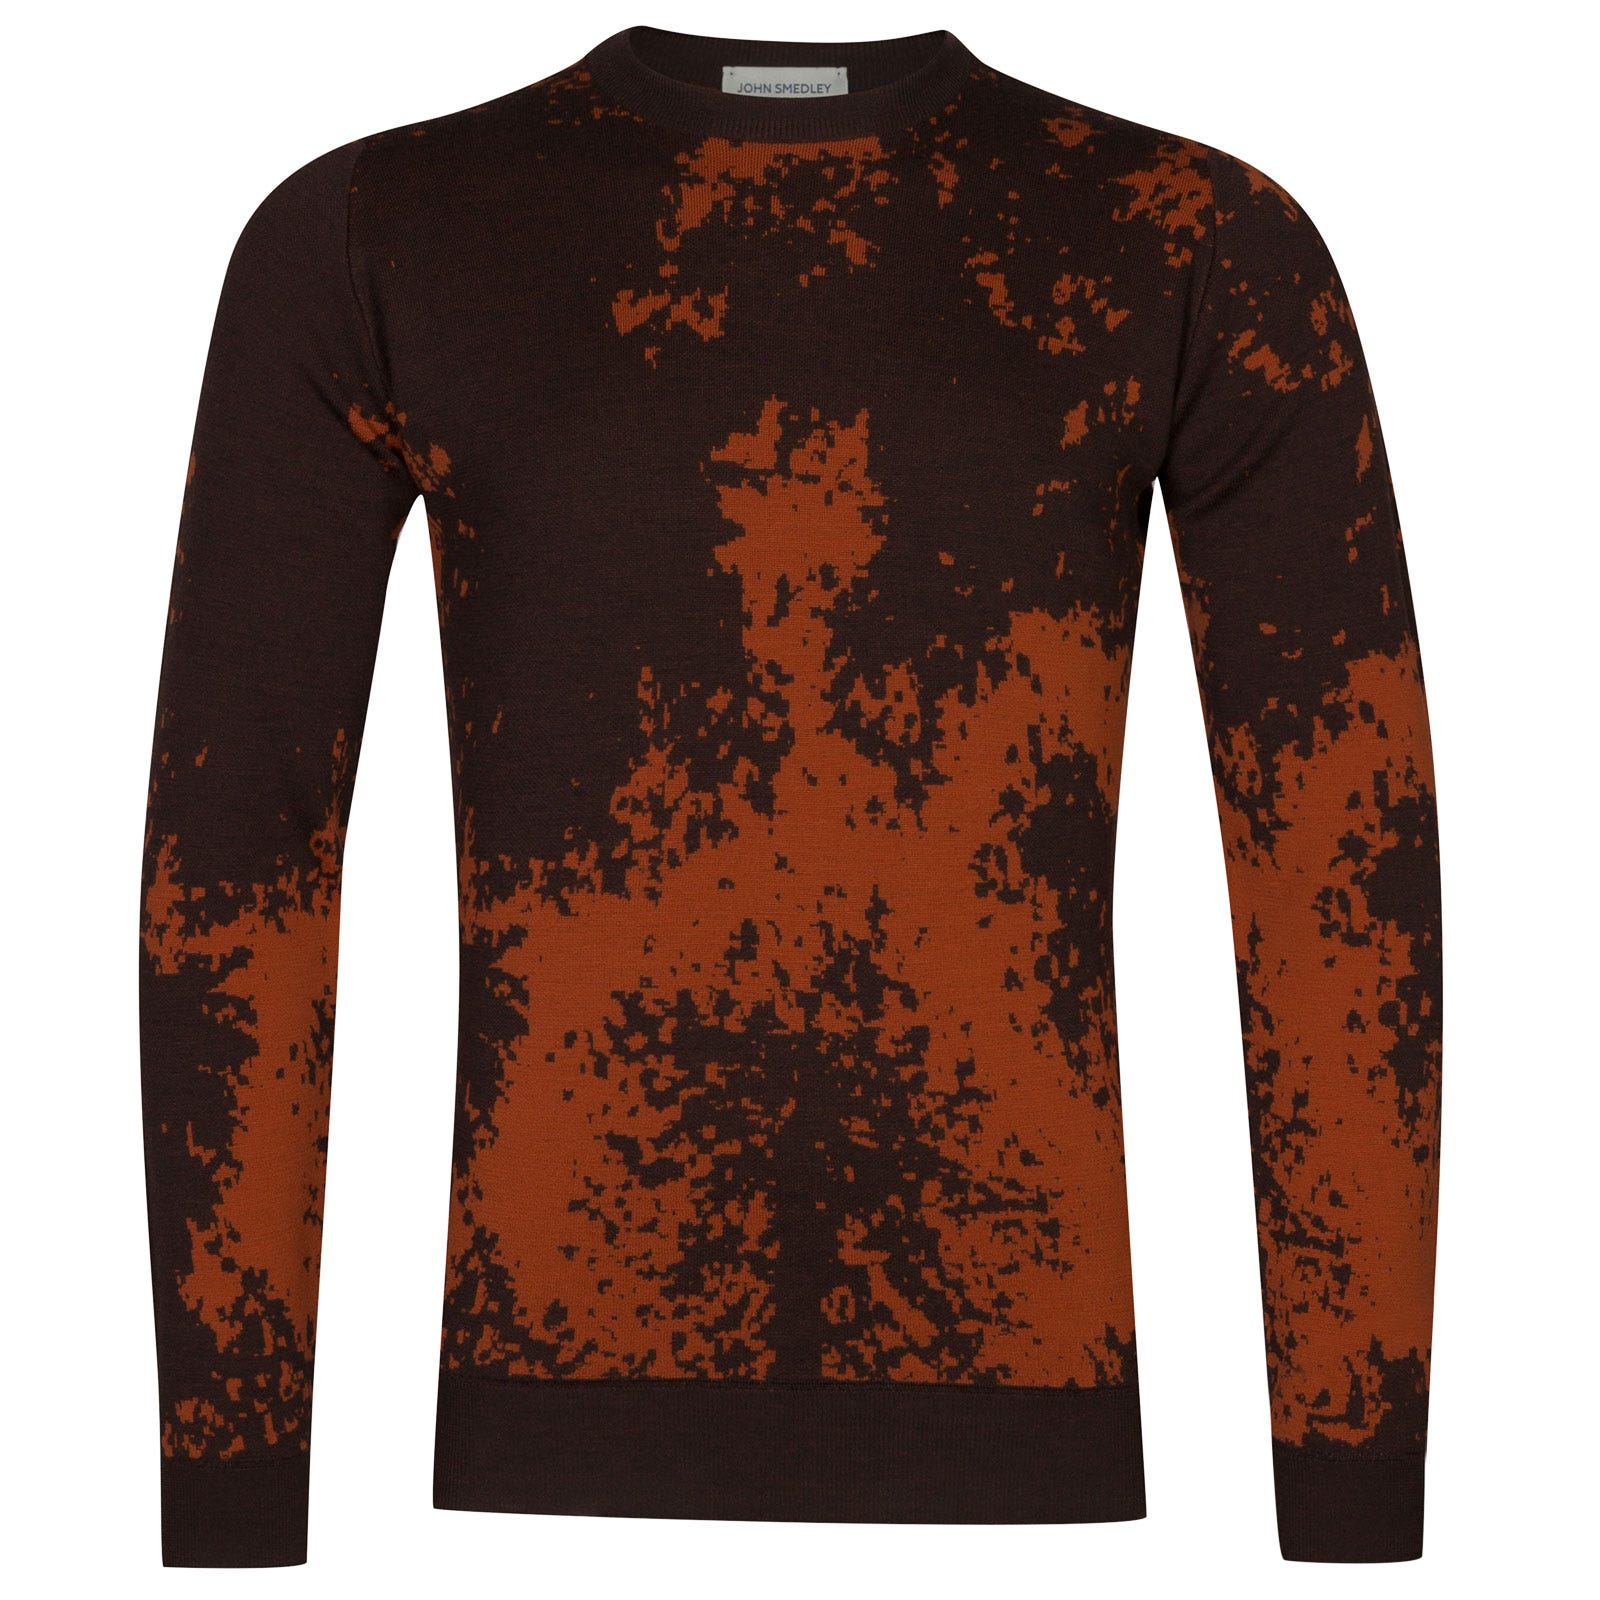 John Smedley bowland Merino Wool Pullover in Chestnut/Flare Orange-S